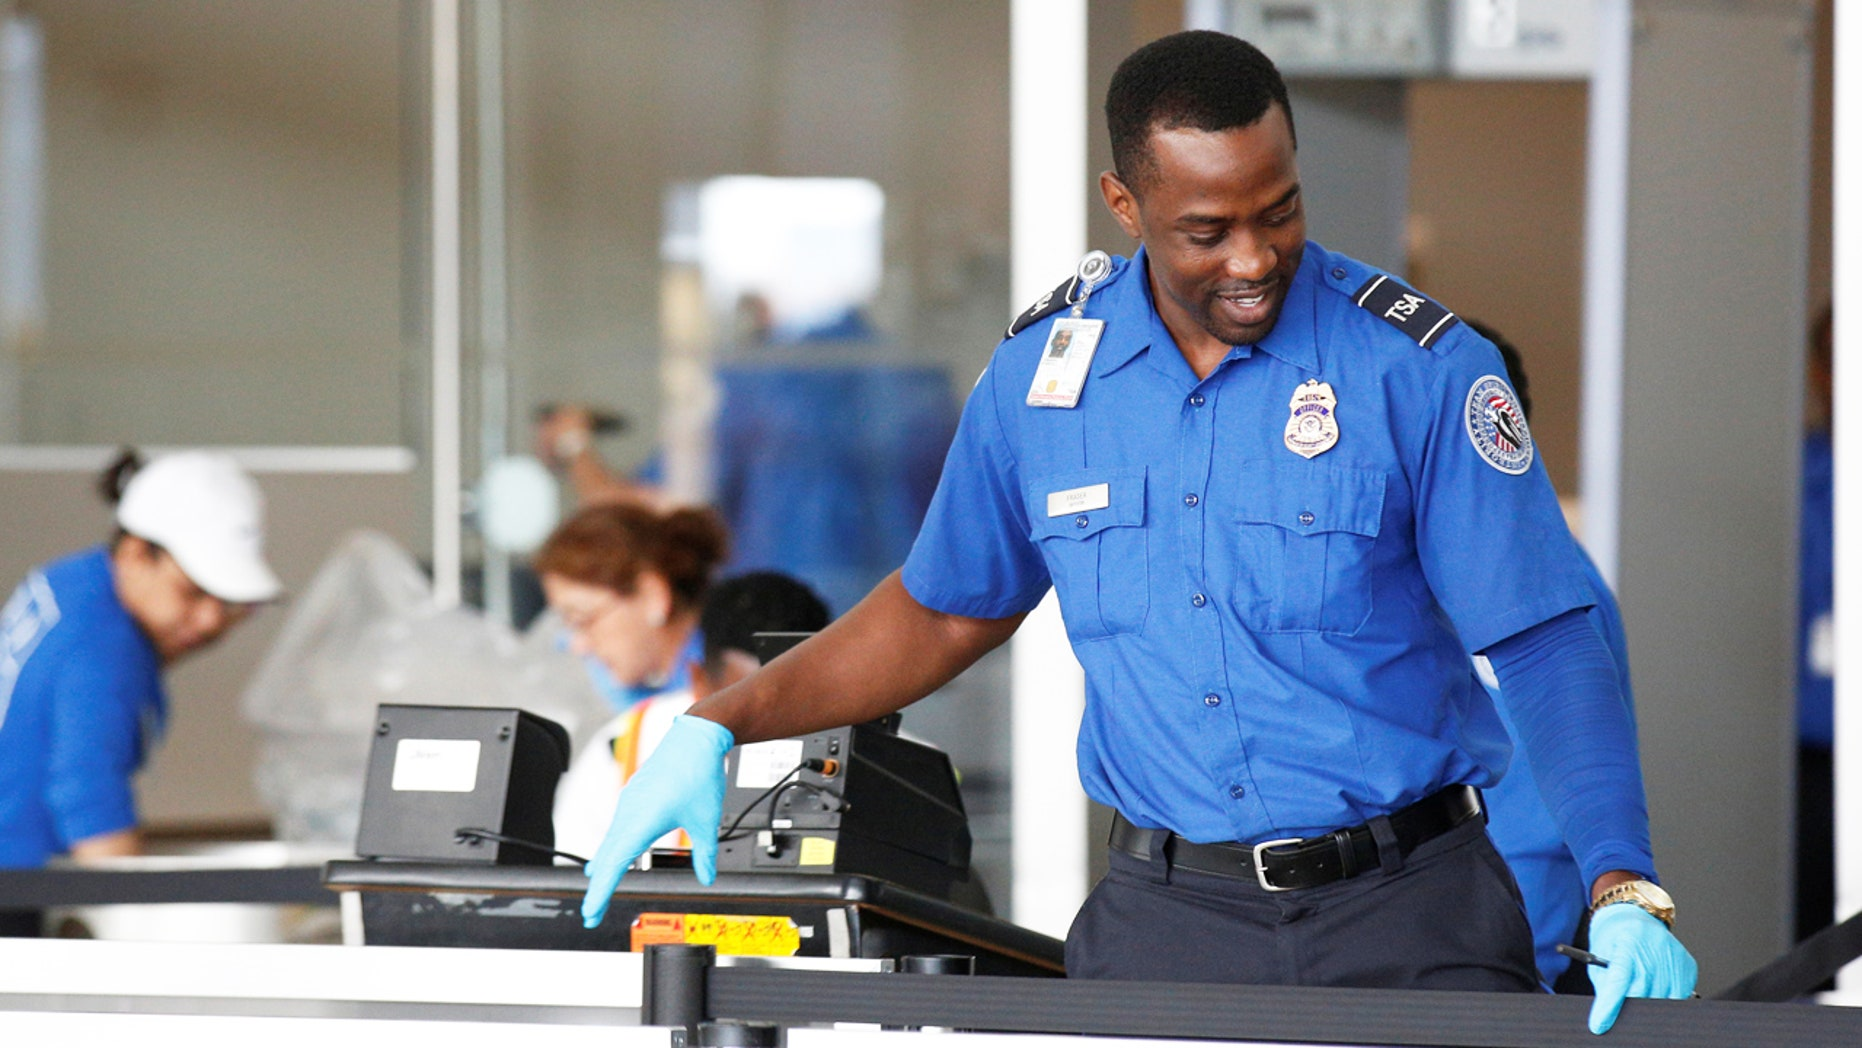 Though the TSA says that they are not planning to begin screening travelers' food through airport security, many Twitter users have been sounding off that their food has indeed been inspected.